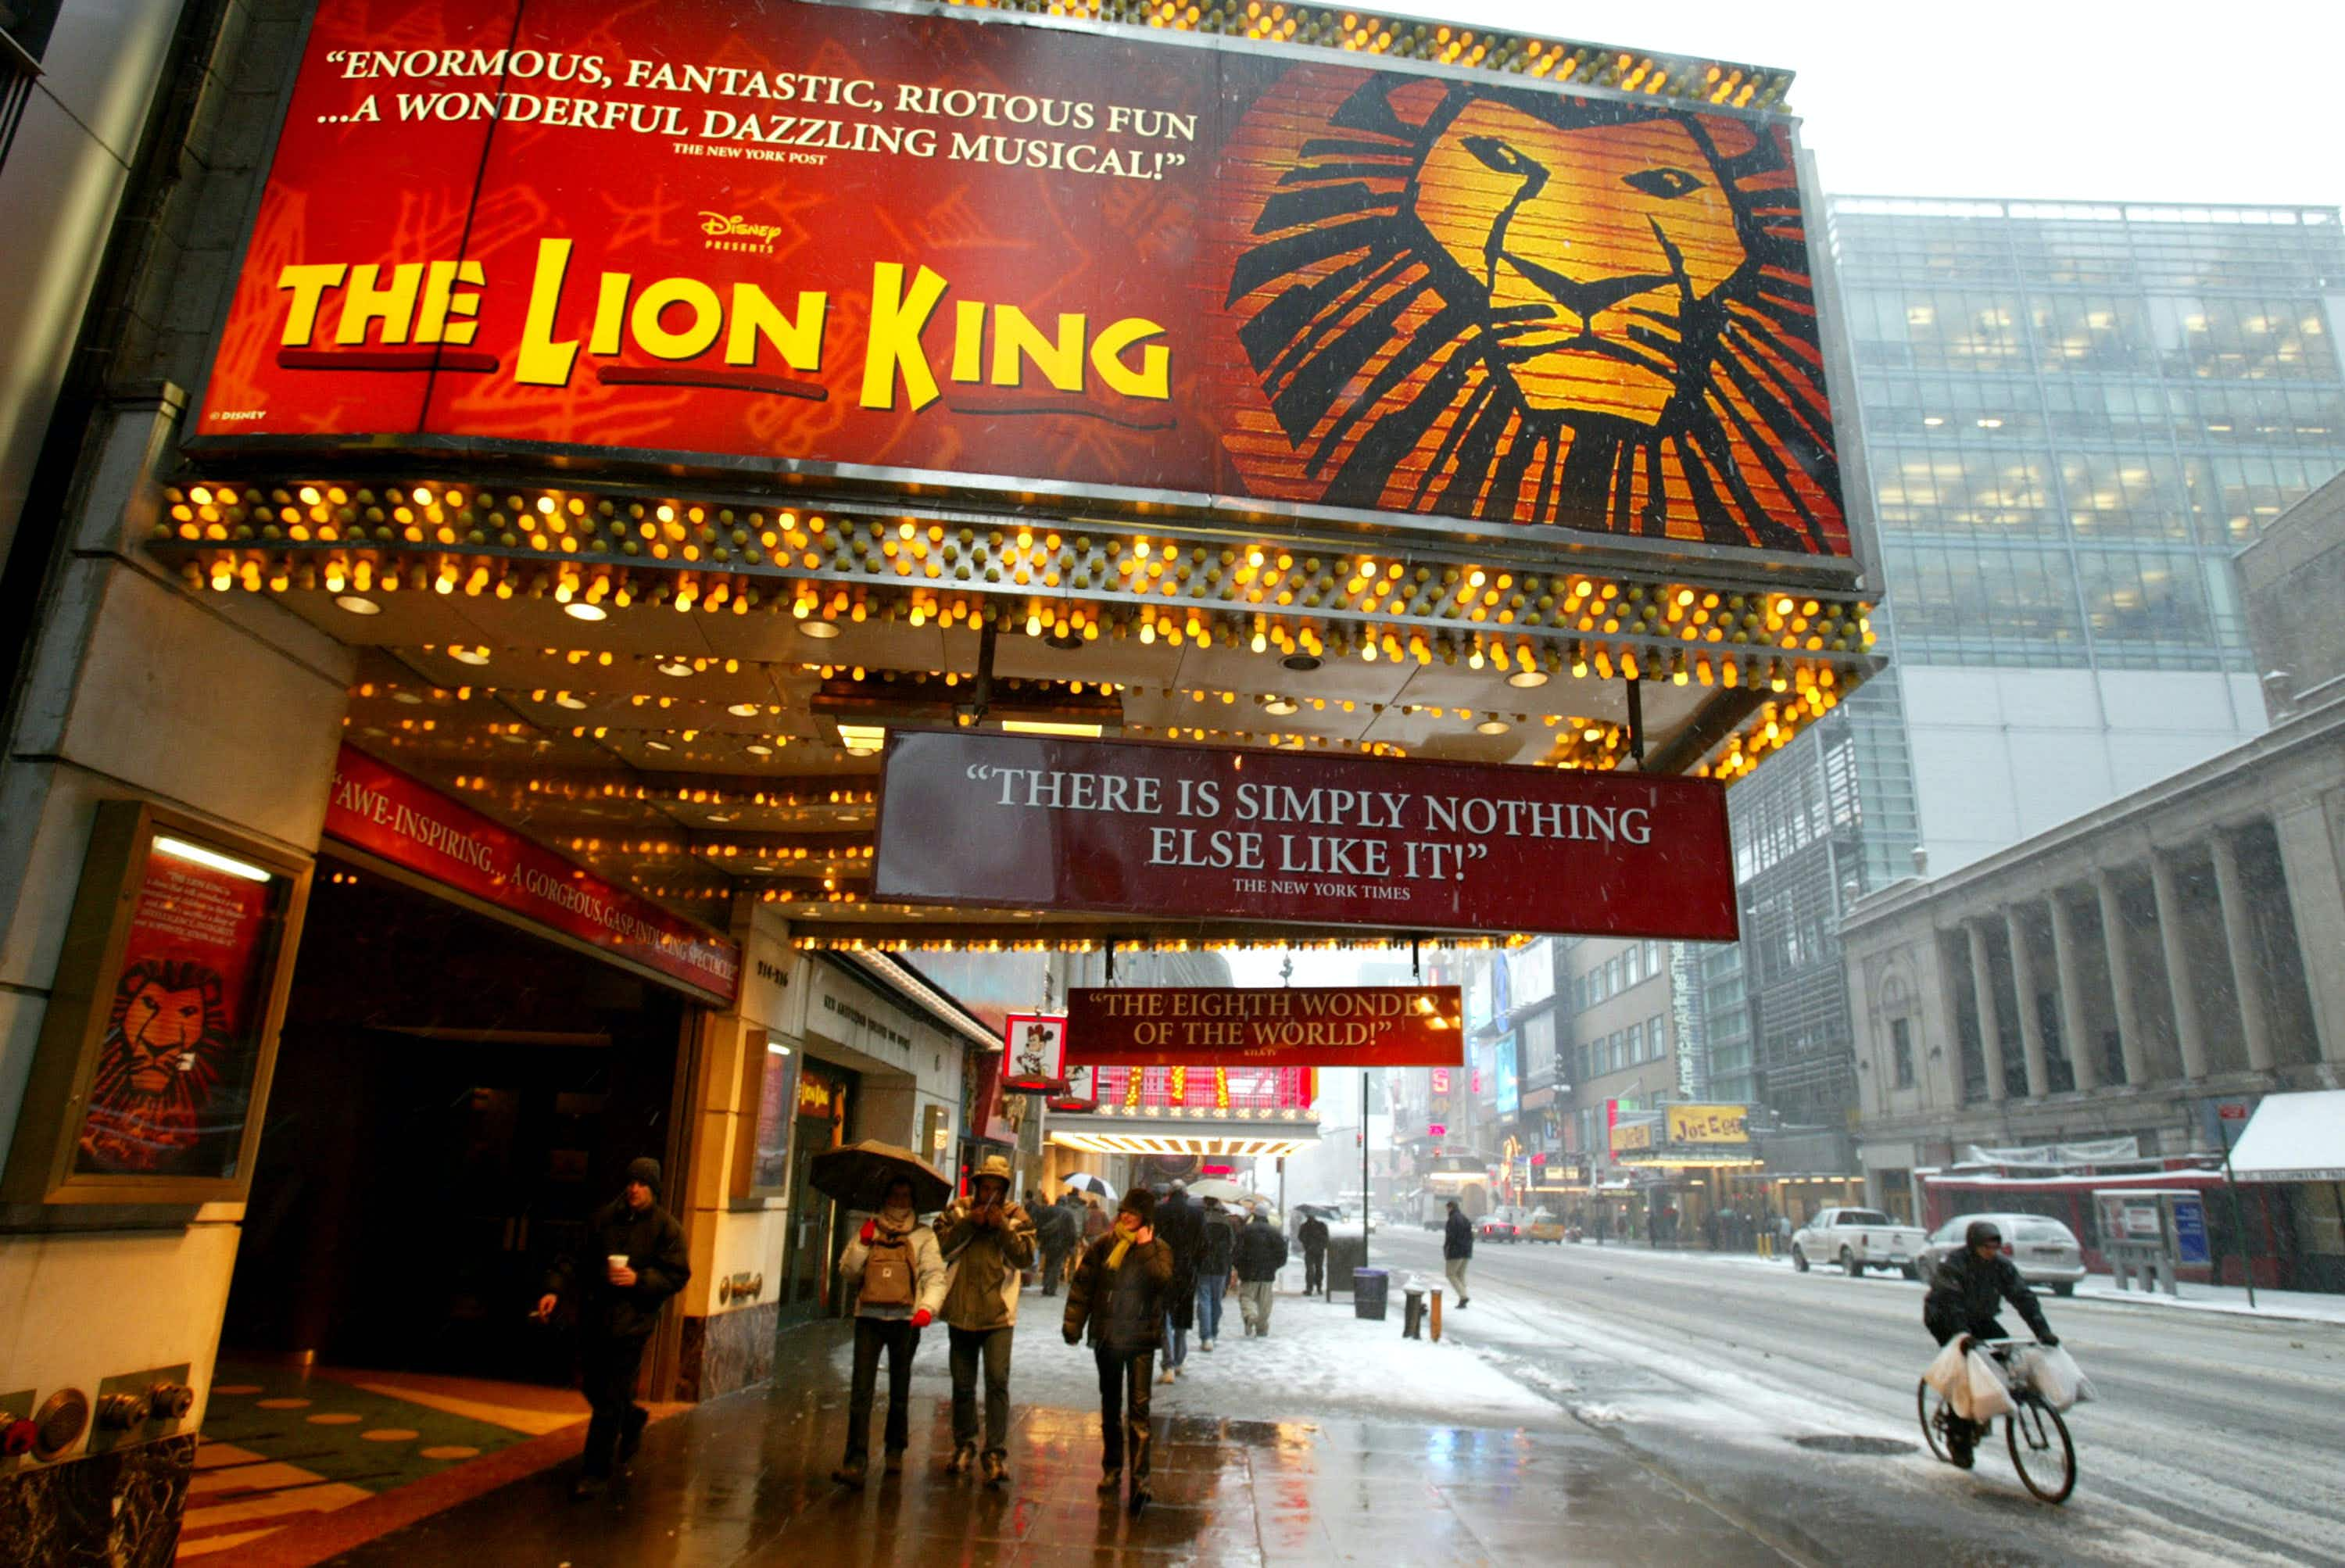 """NEW YORK - MARCH 6:  Pedestrians walk beneath a sign for the musical """"The Lion King"""" March 6, 2003 in New York City. About 325 Broadway theater musicians are set to go on strike tonight at midnight unless an agreement on orchestra size can be reached.  (Photo by Mario Tama/Getty Images)"""